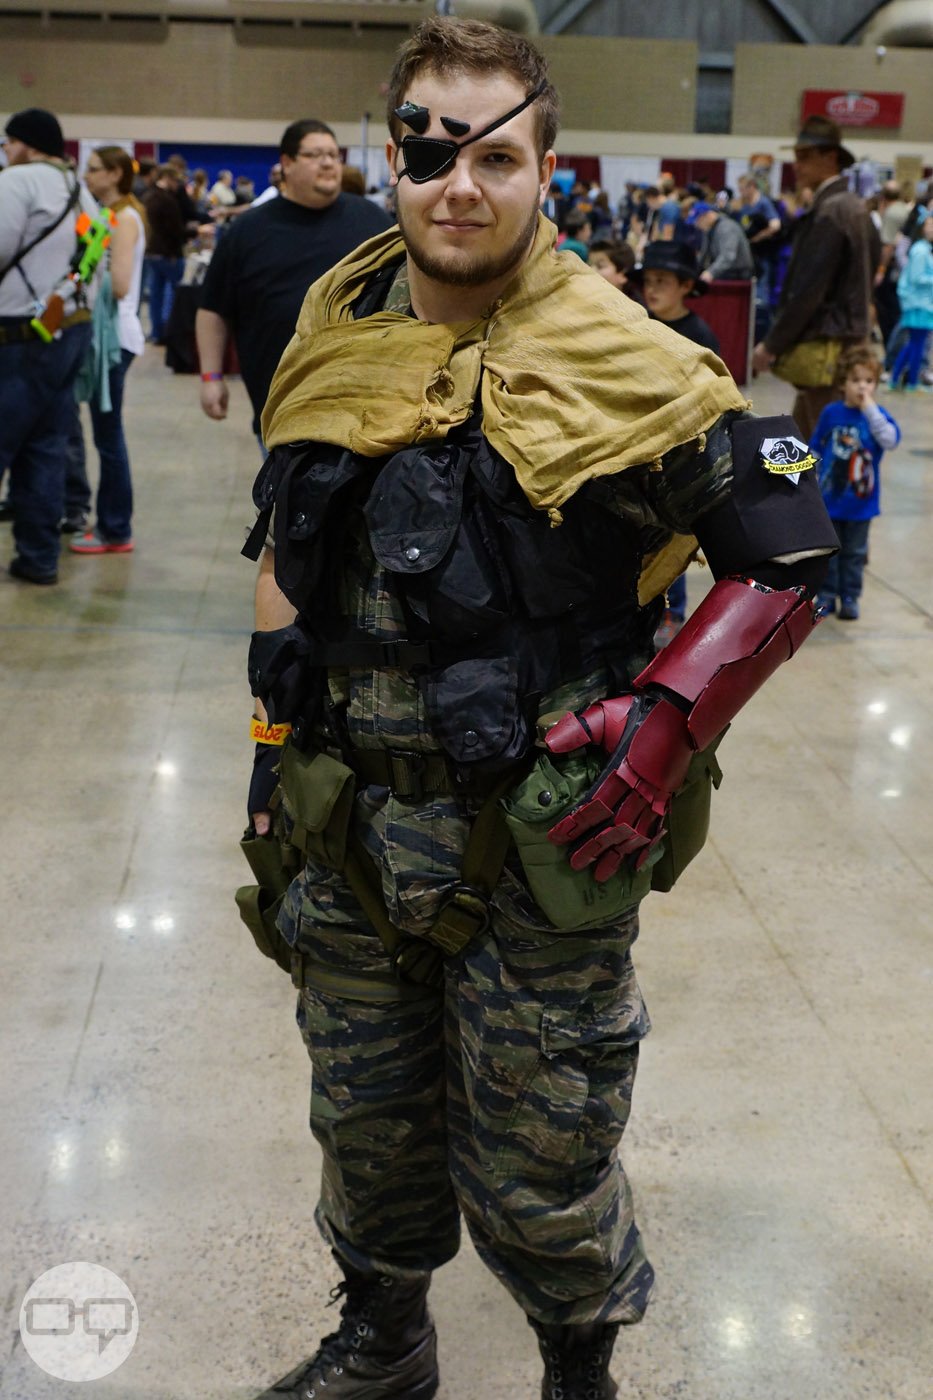 Planet-Comicon-2015-ProNerd-Cosplay-D4-3